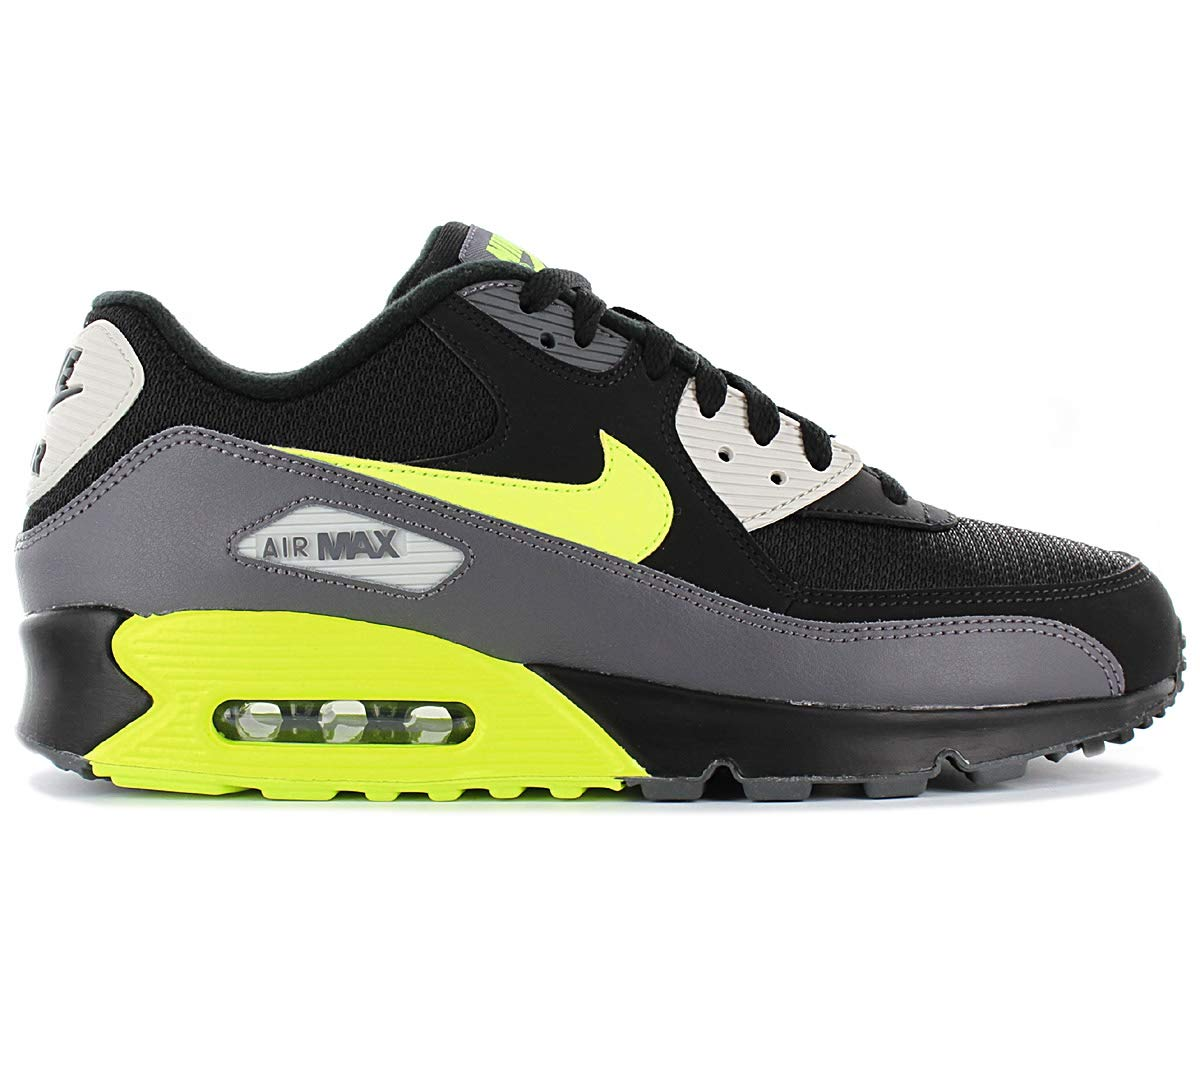 Nike Mens Air Max 90 Essential Running Shoes Dark GreyVoltBlackBone AJ1285 015 Size 8